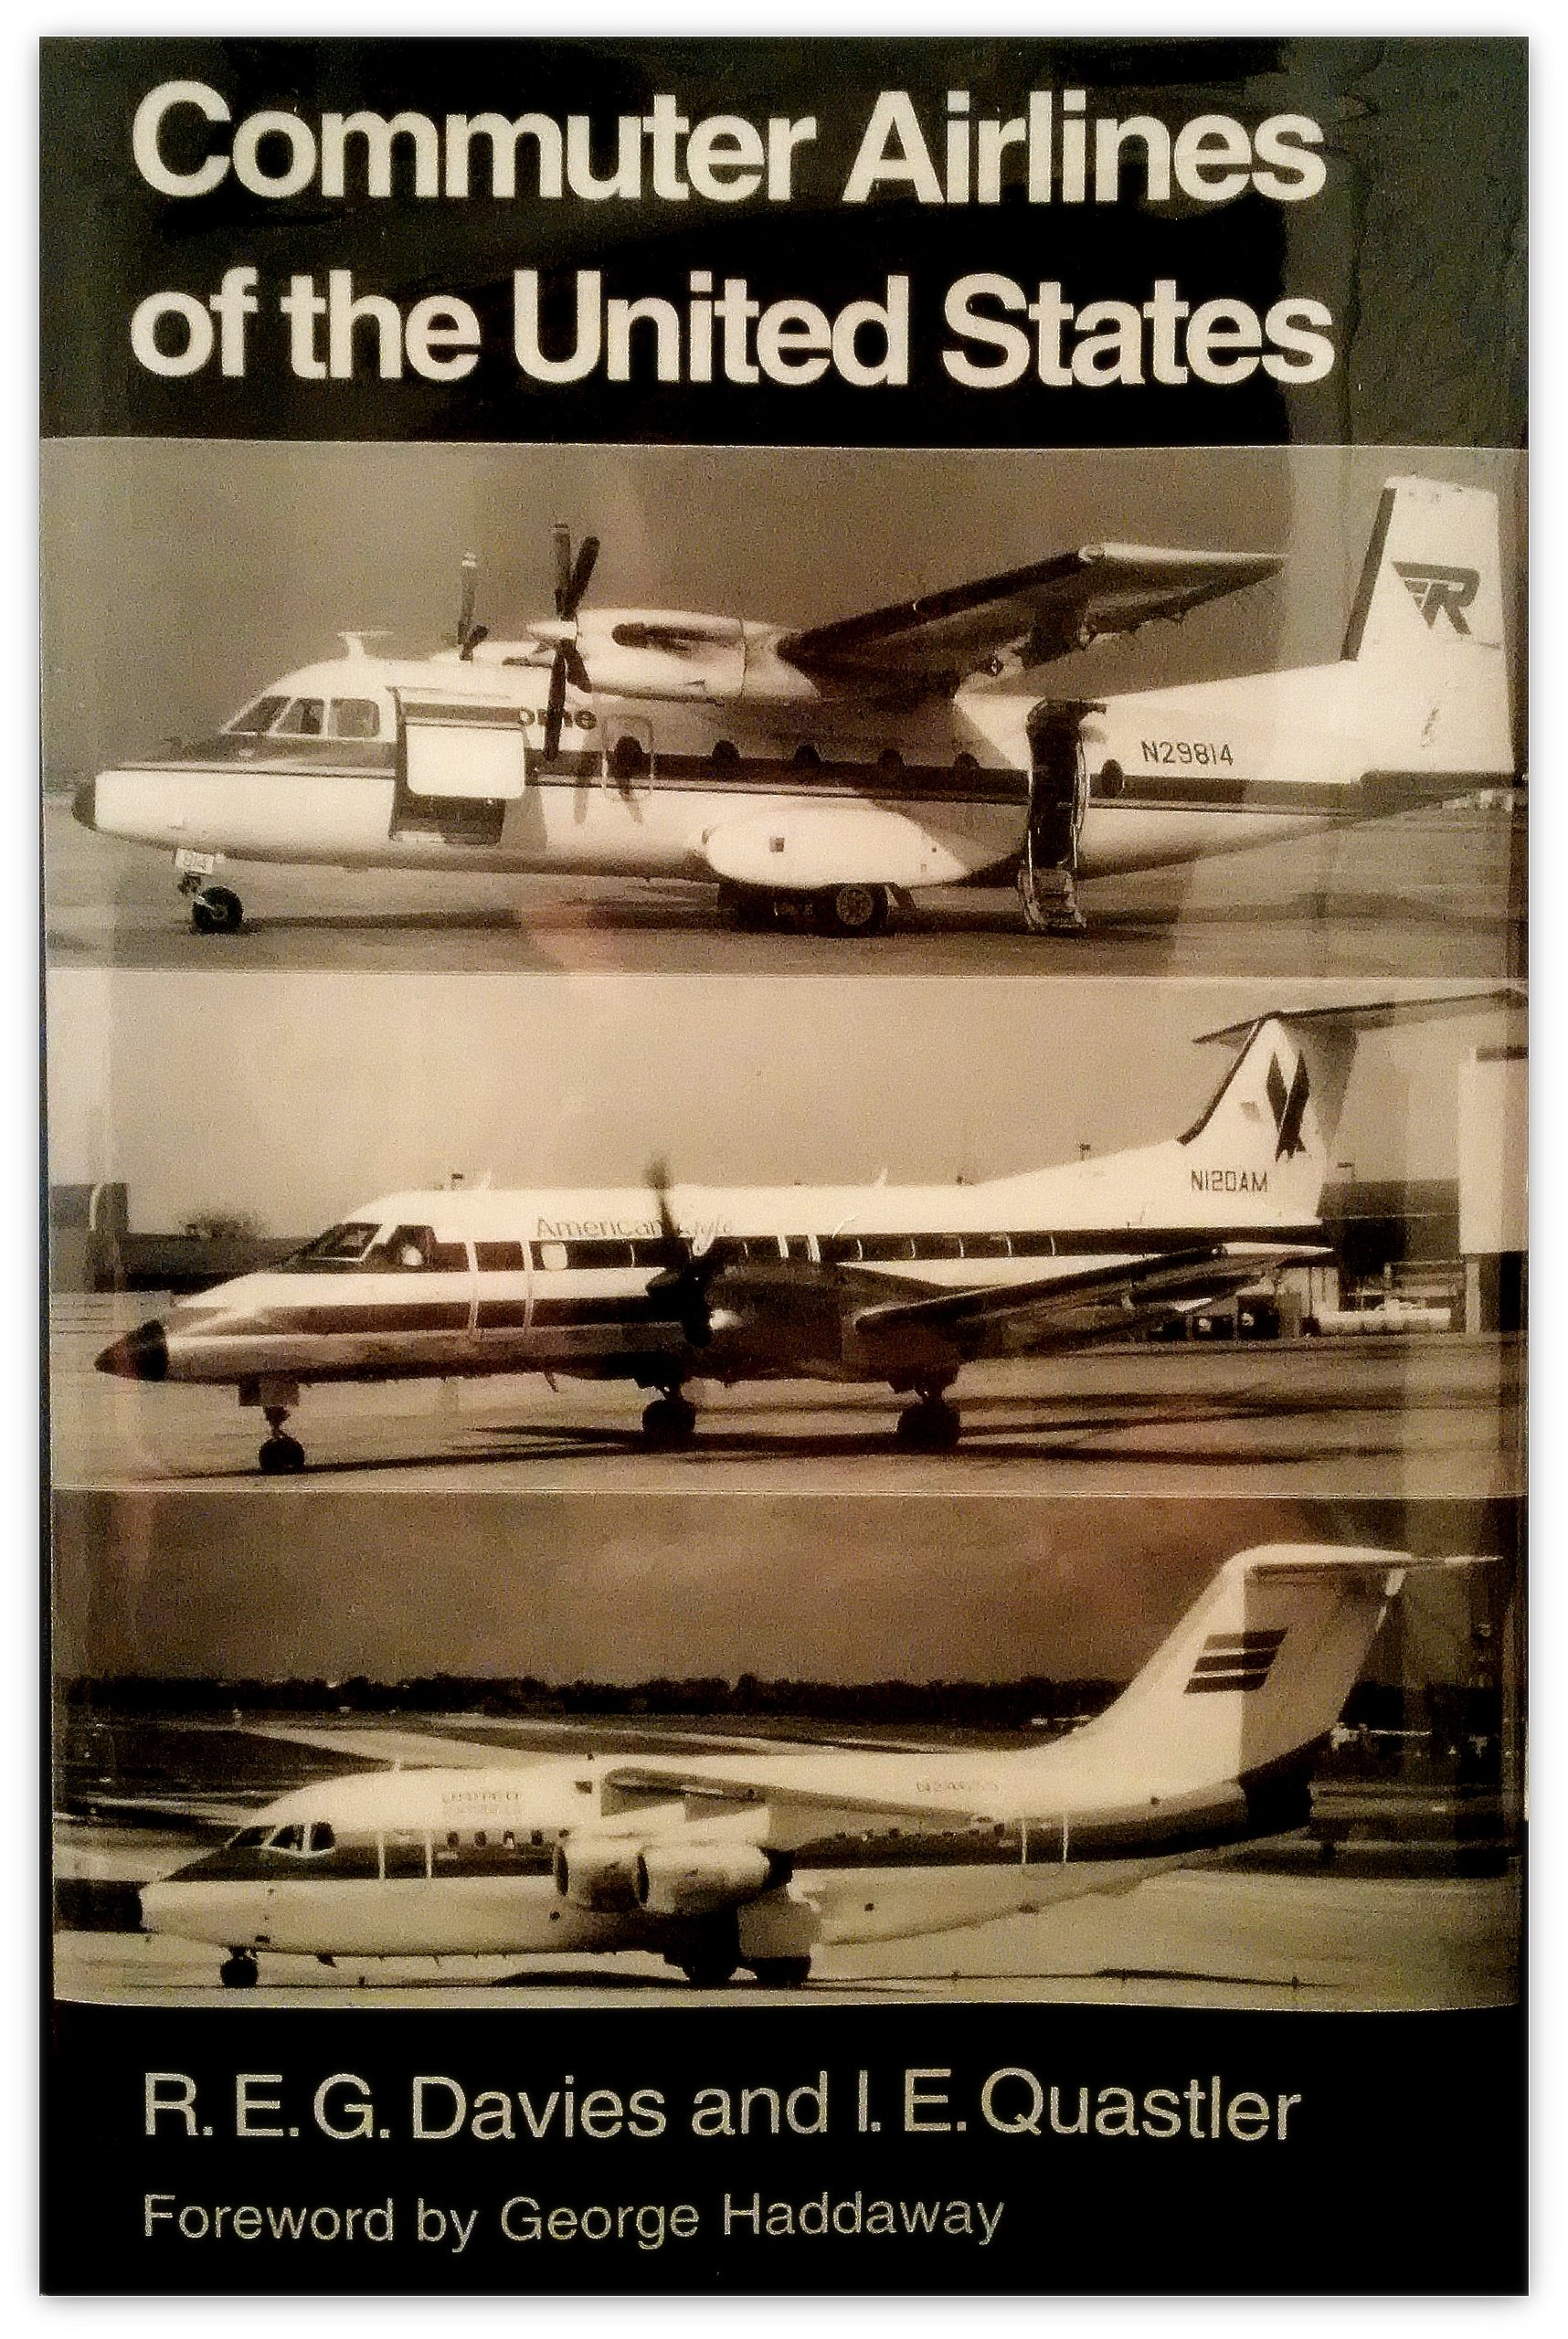 Commuter Airlines of the United States